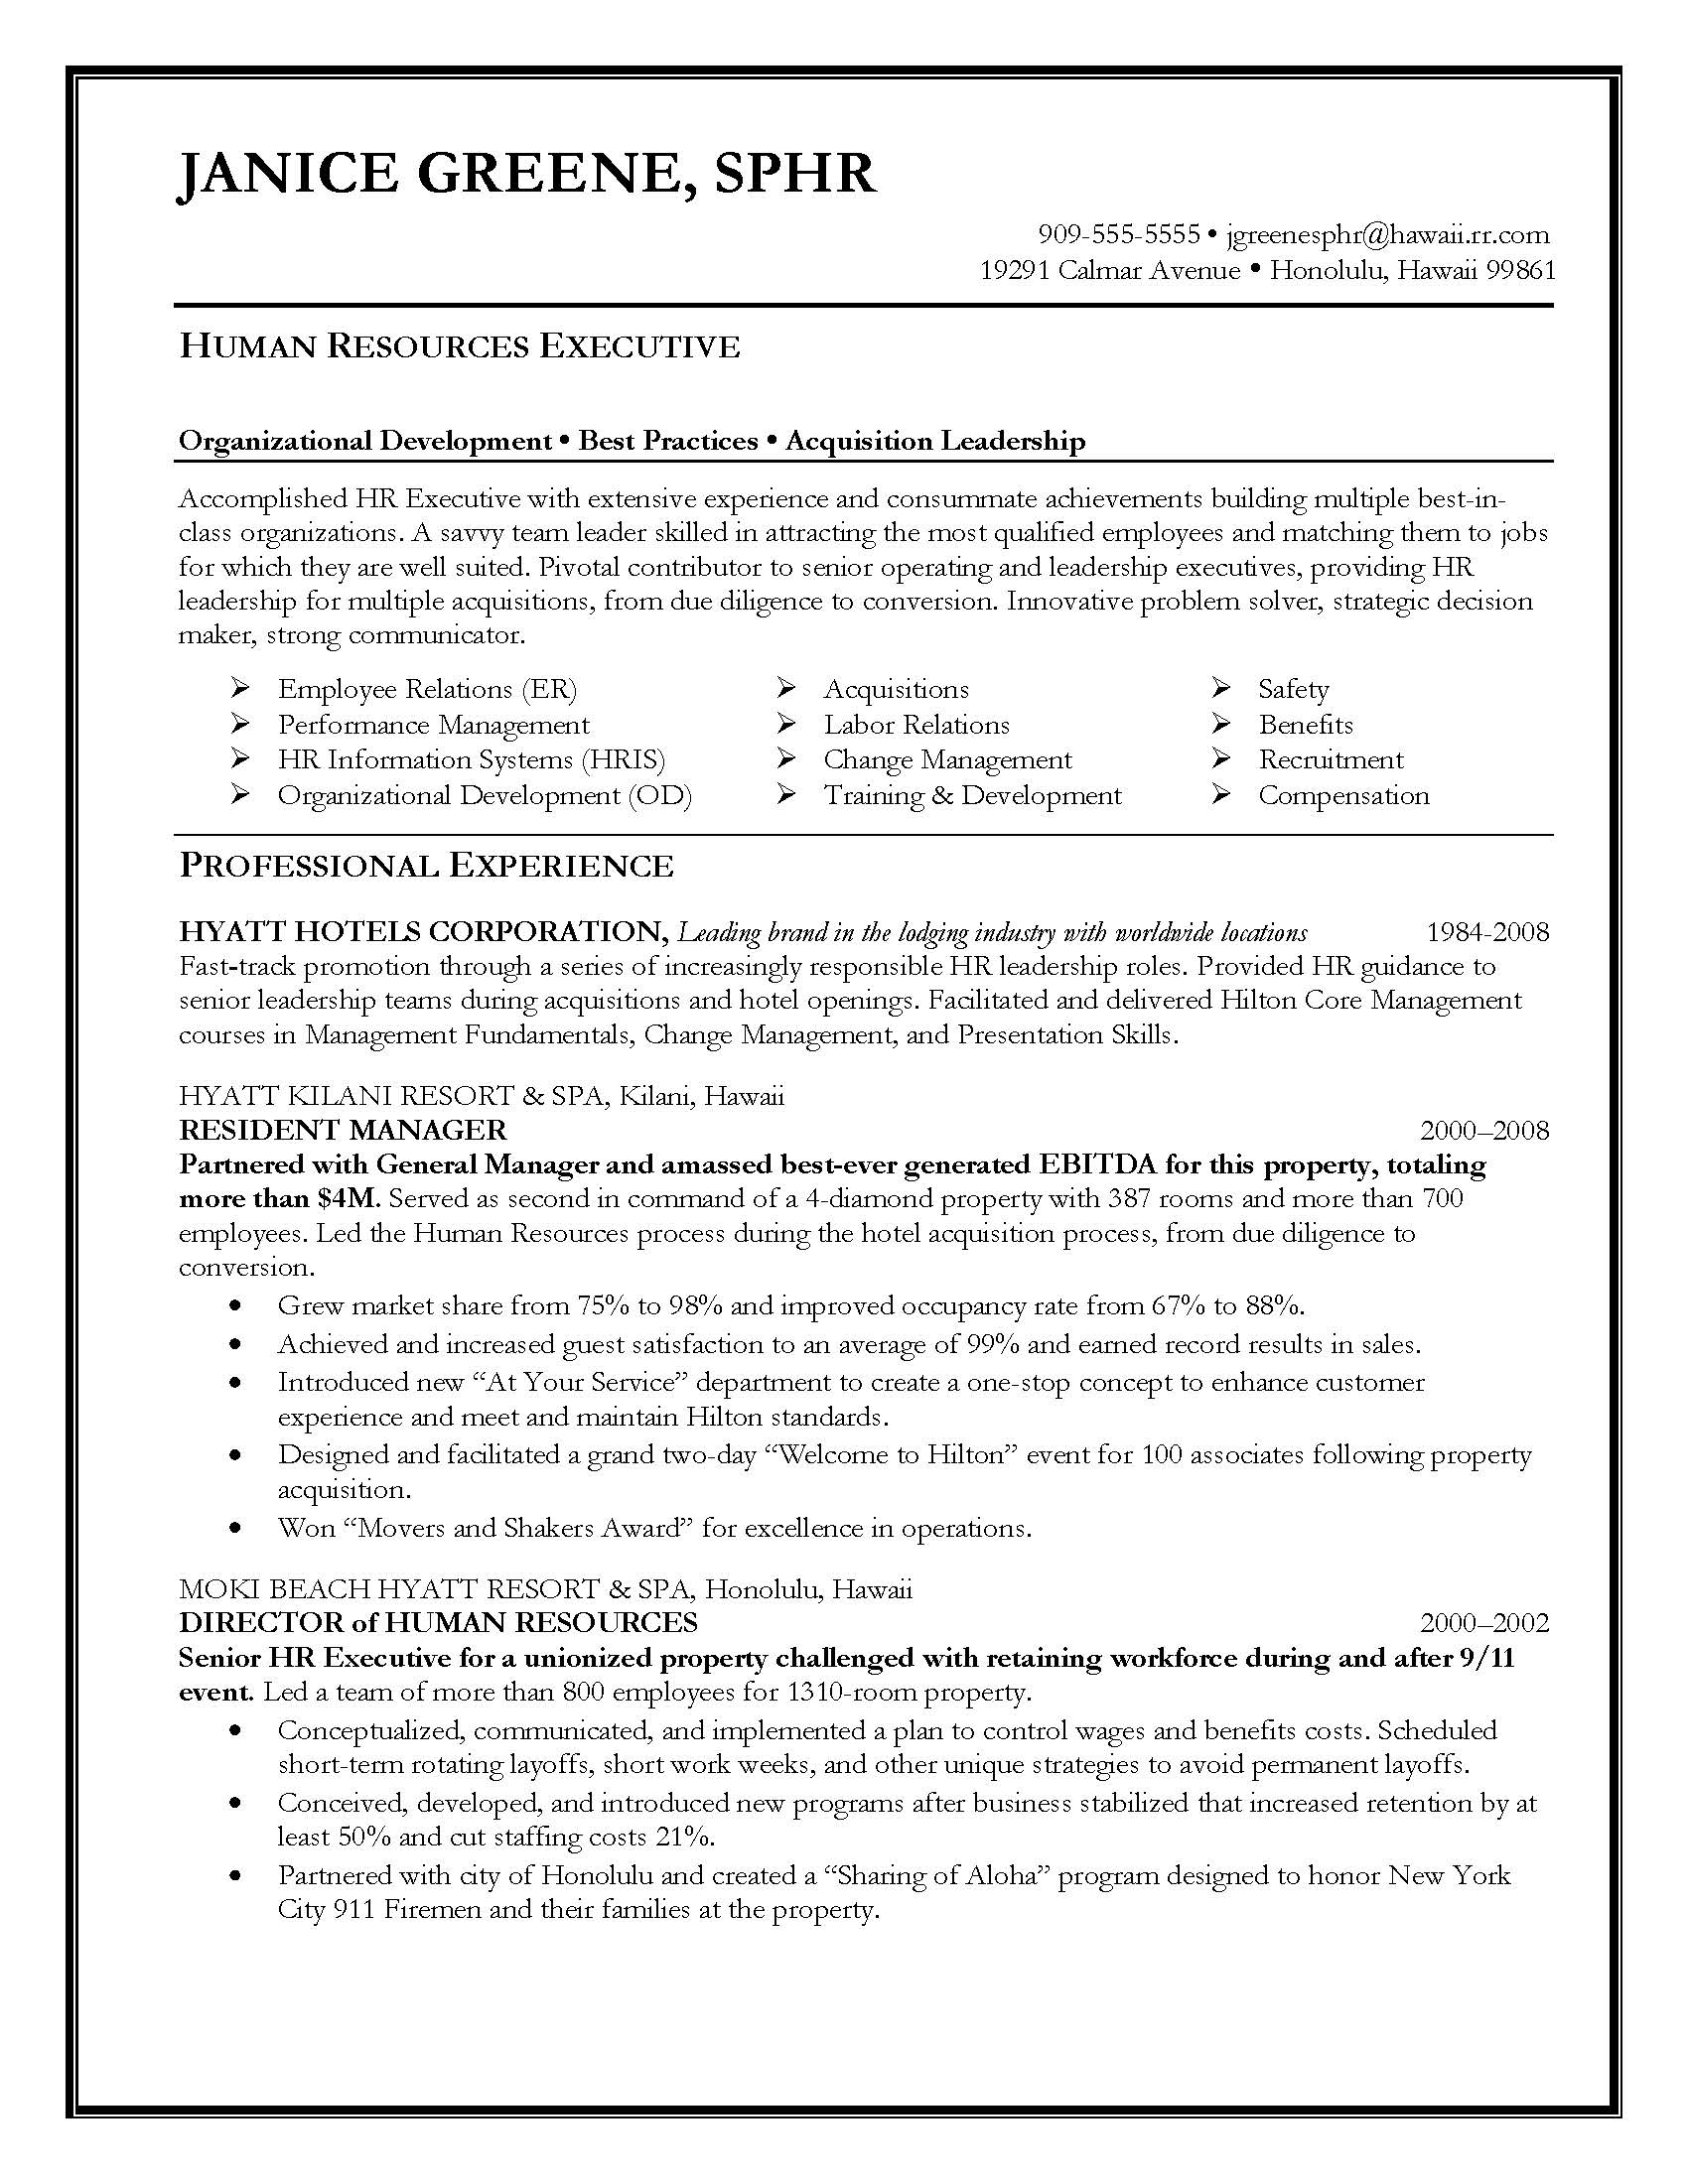 sample resume sle of resume hr assistant job free resume sap my document blog marketing consultant - Employee Relation Manager Resume